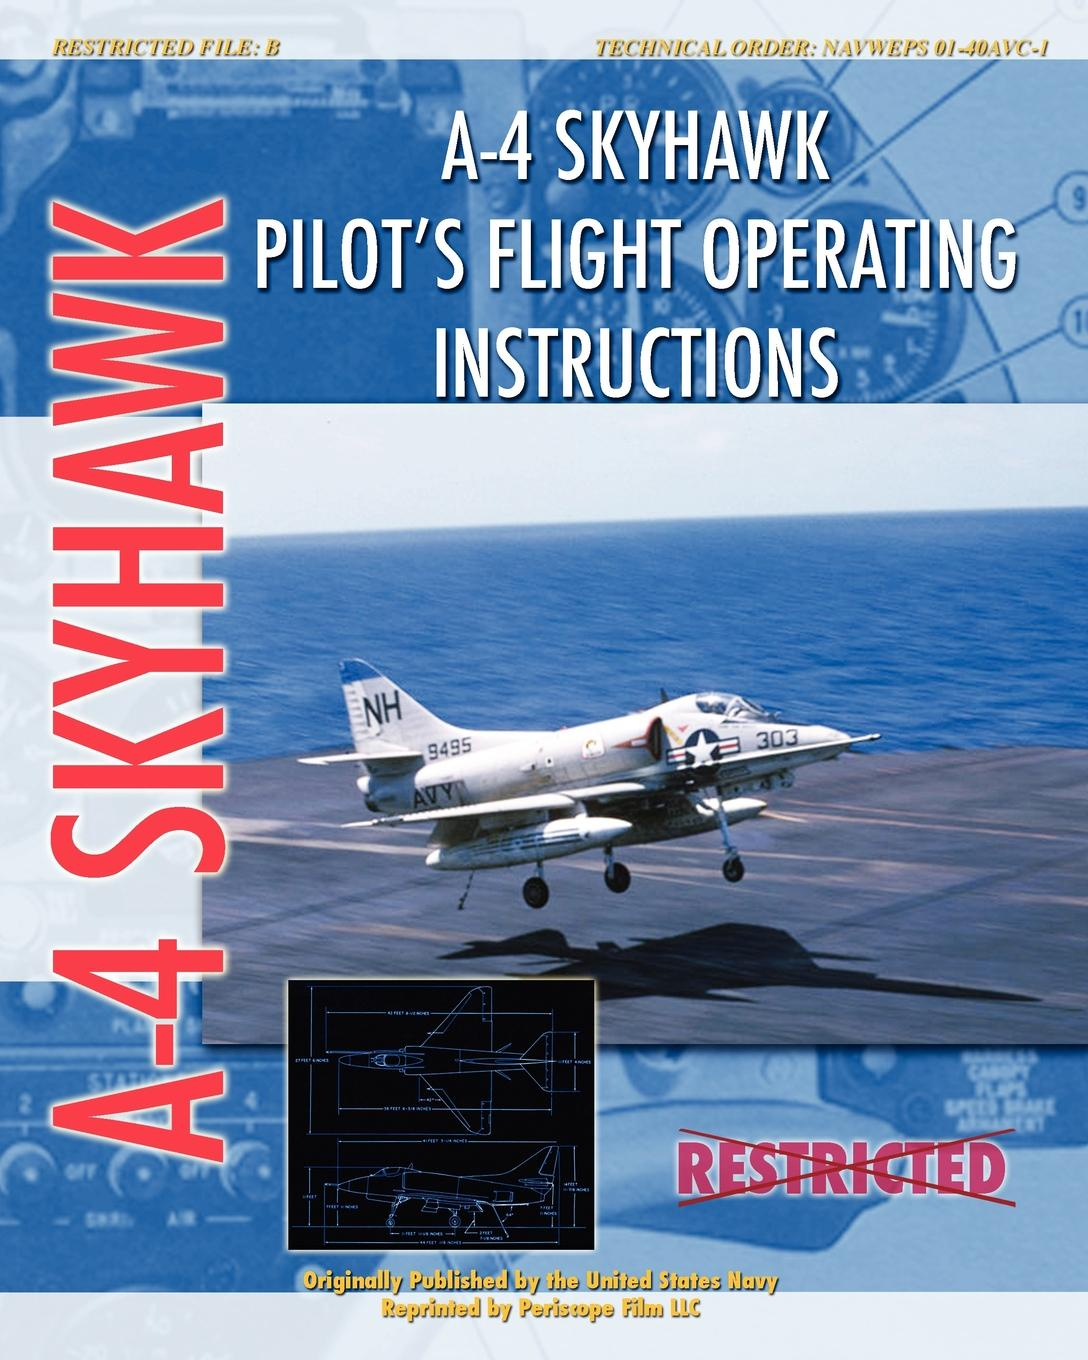 United States Air Force A-4 Skyhawk Pilot's Flight Operating Instructions